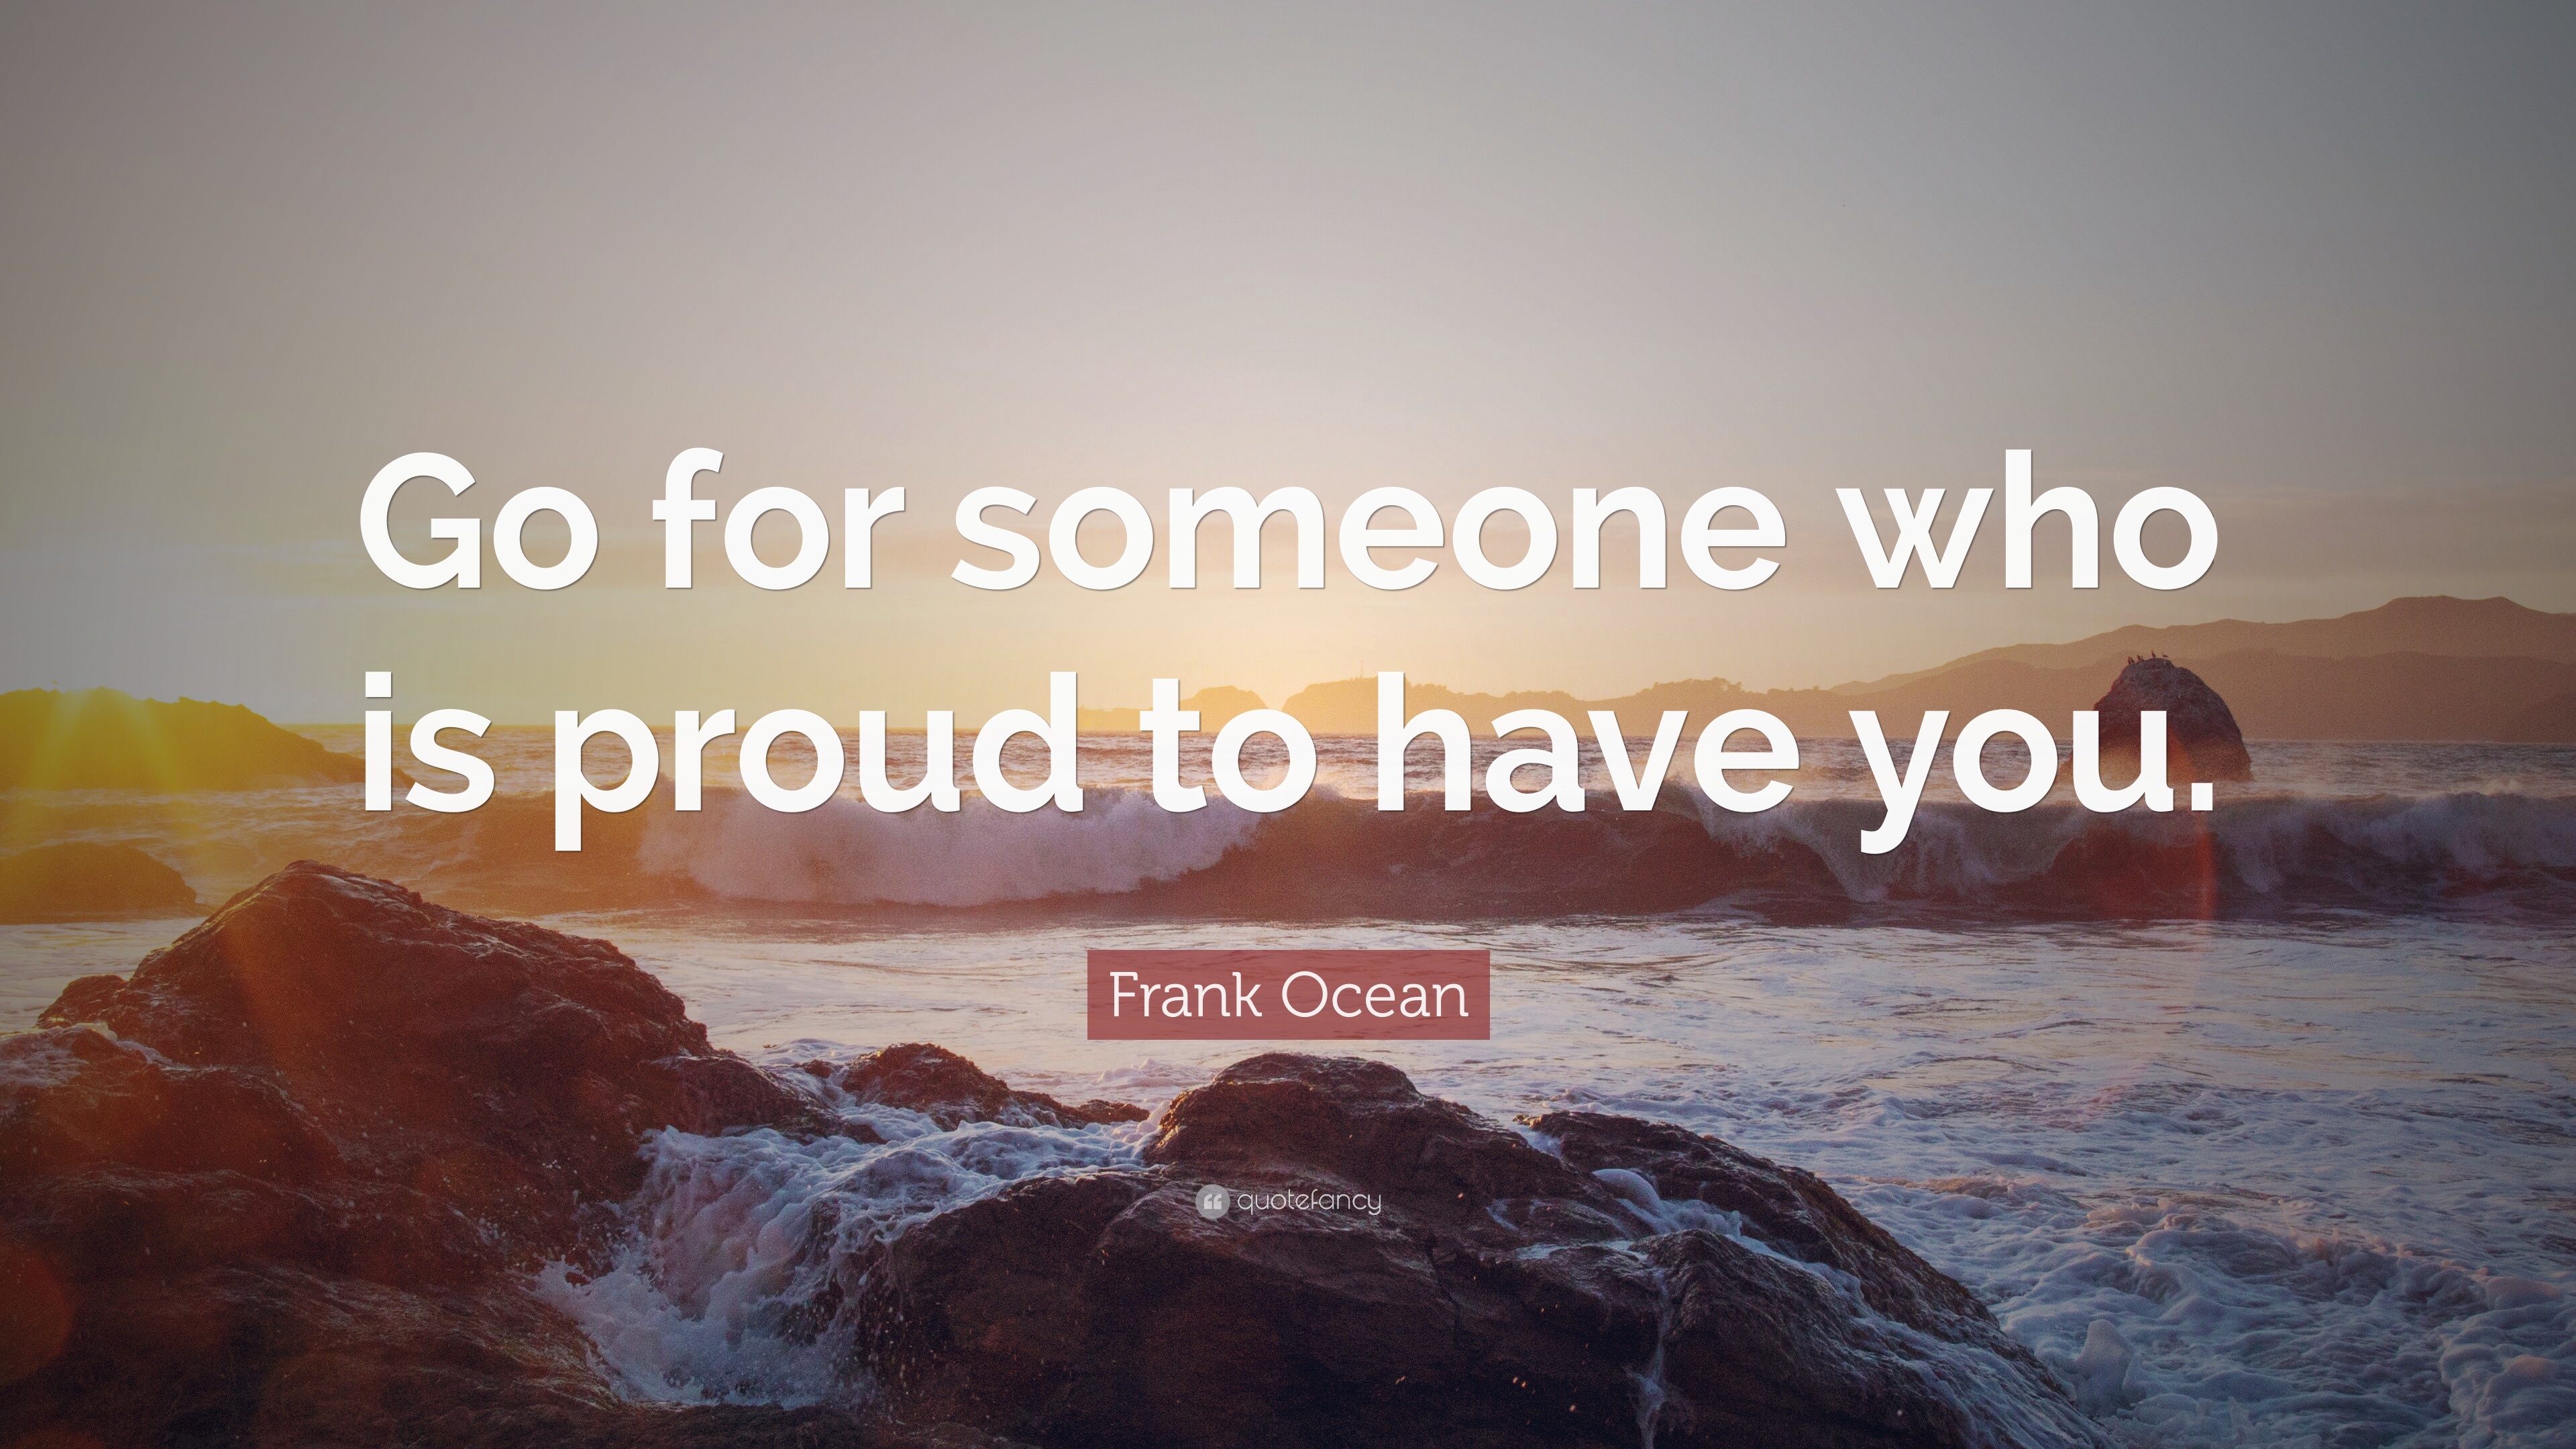 Frank Ocean Quote Go For Someone Who Is Proud To Have You 12